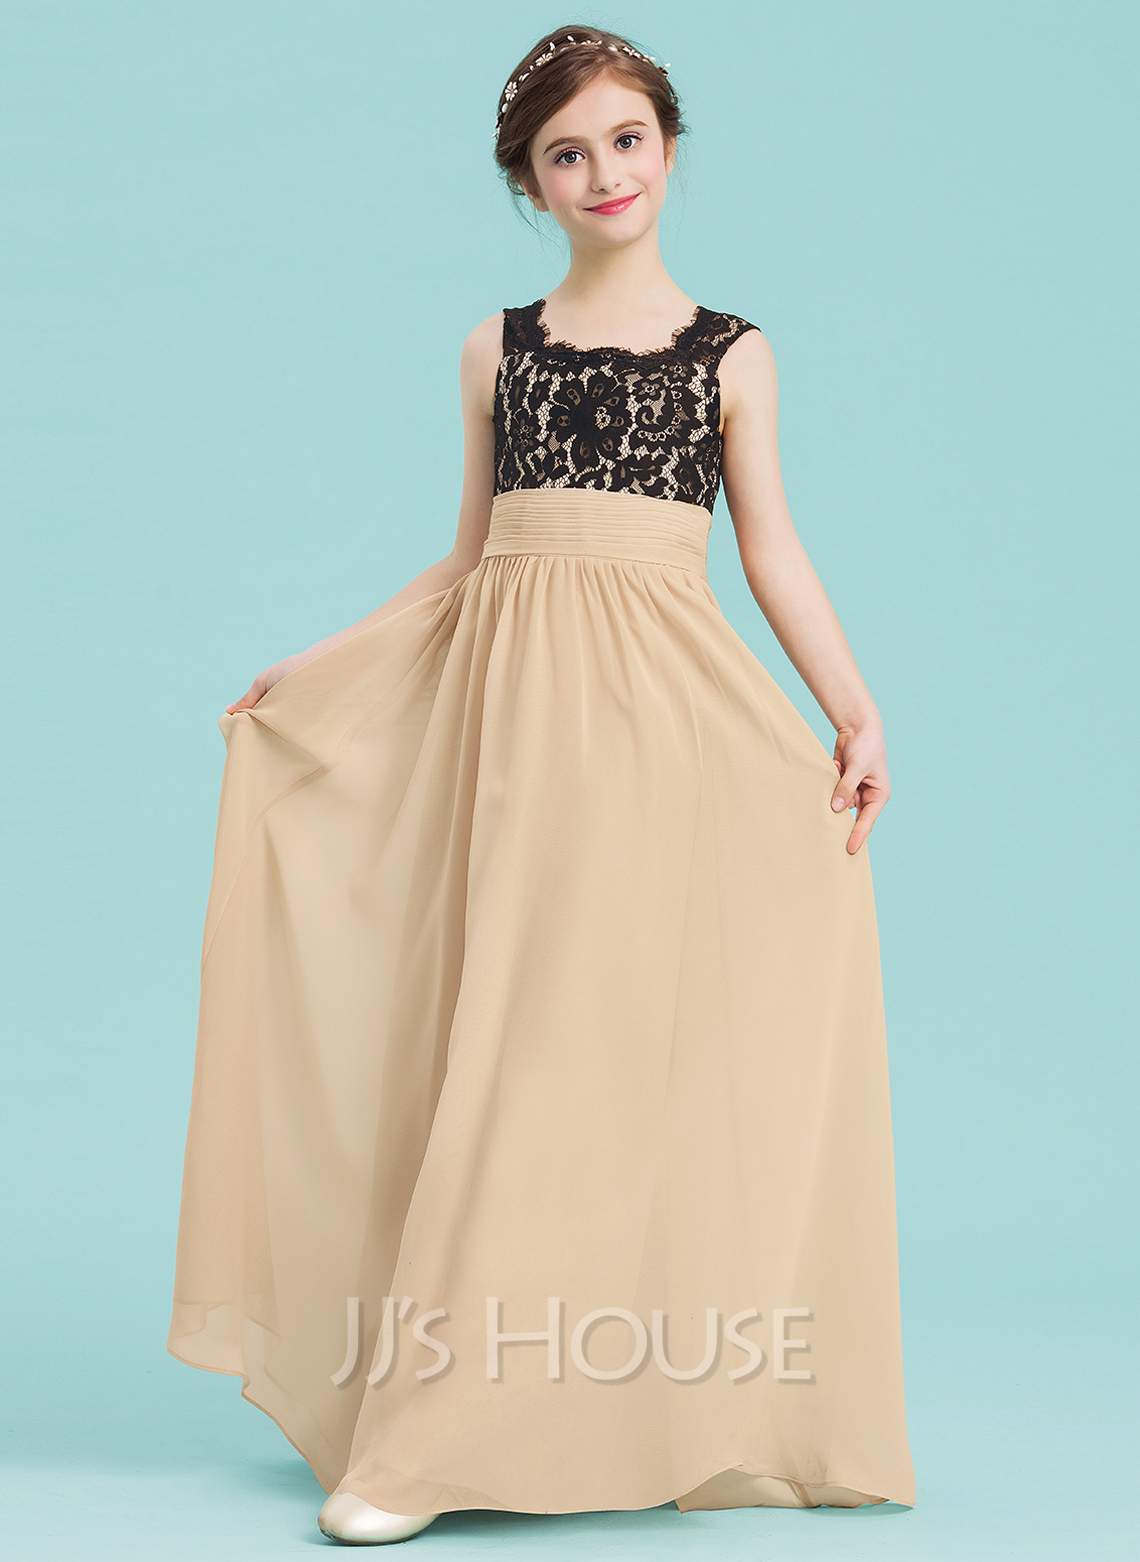 A-Line Scoop Neck Floor-Length Chiffon Junior Bridesmaid Dress